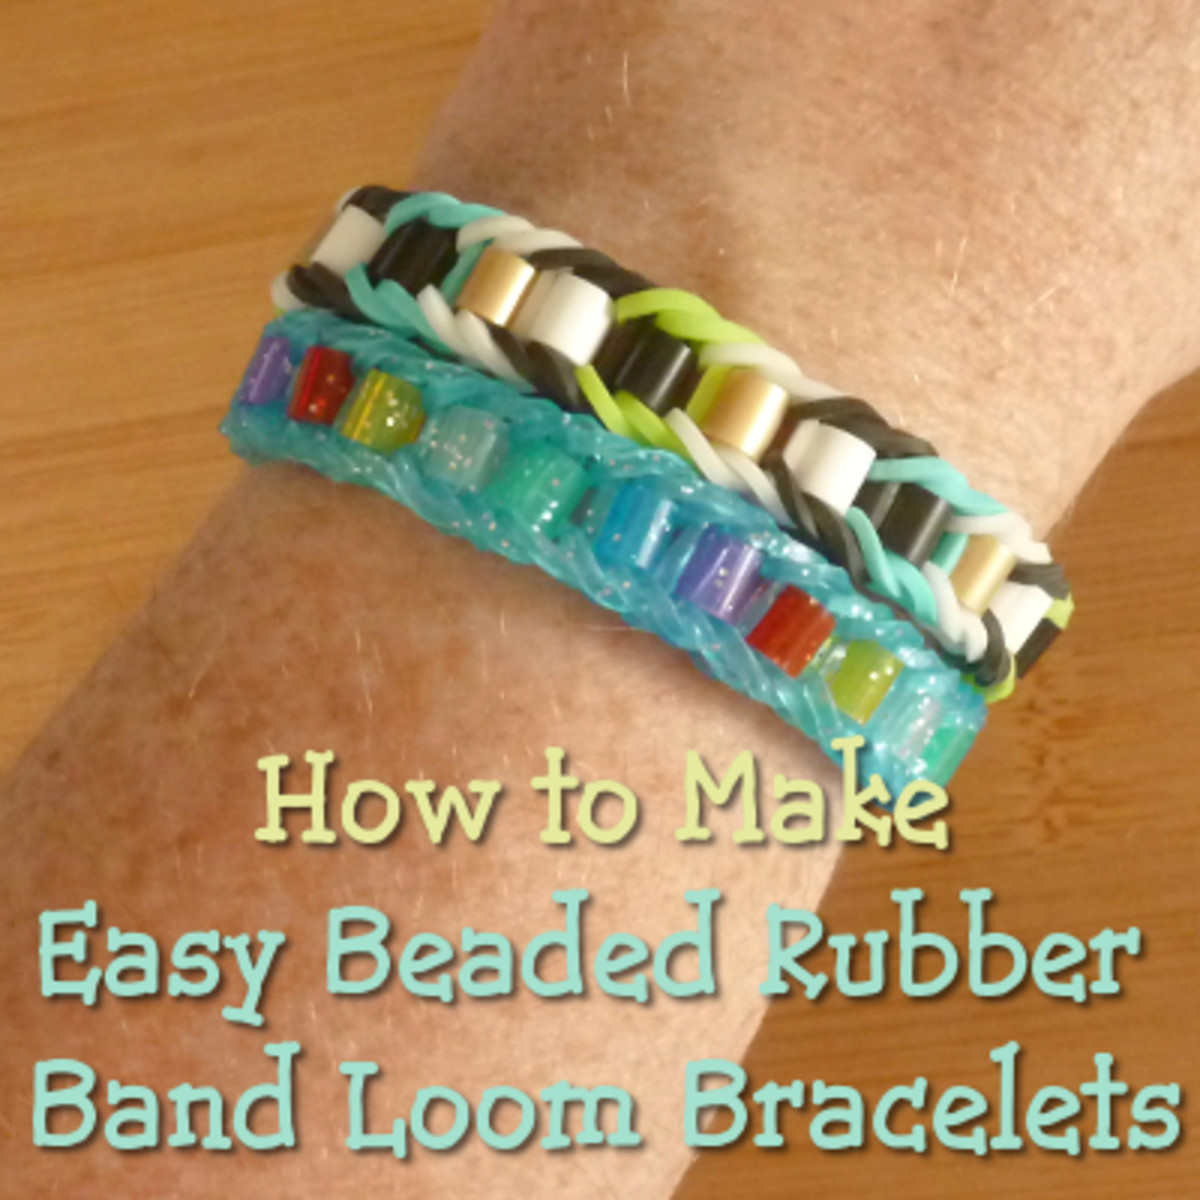 How to make easy beaded rubber band loom bracelets